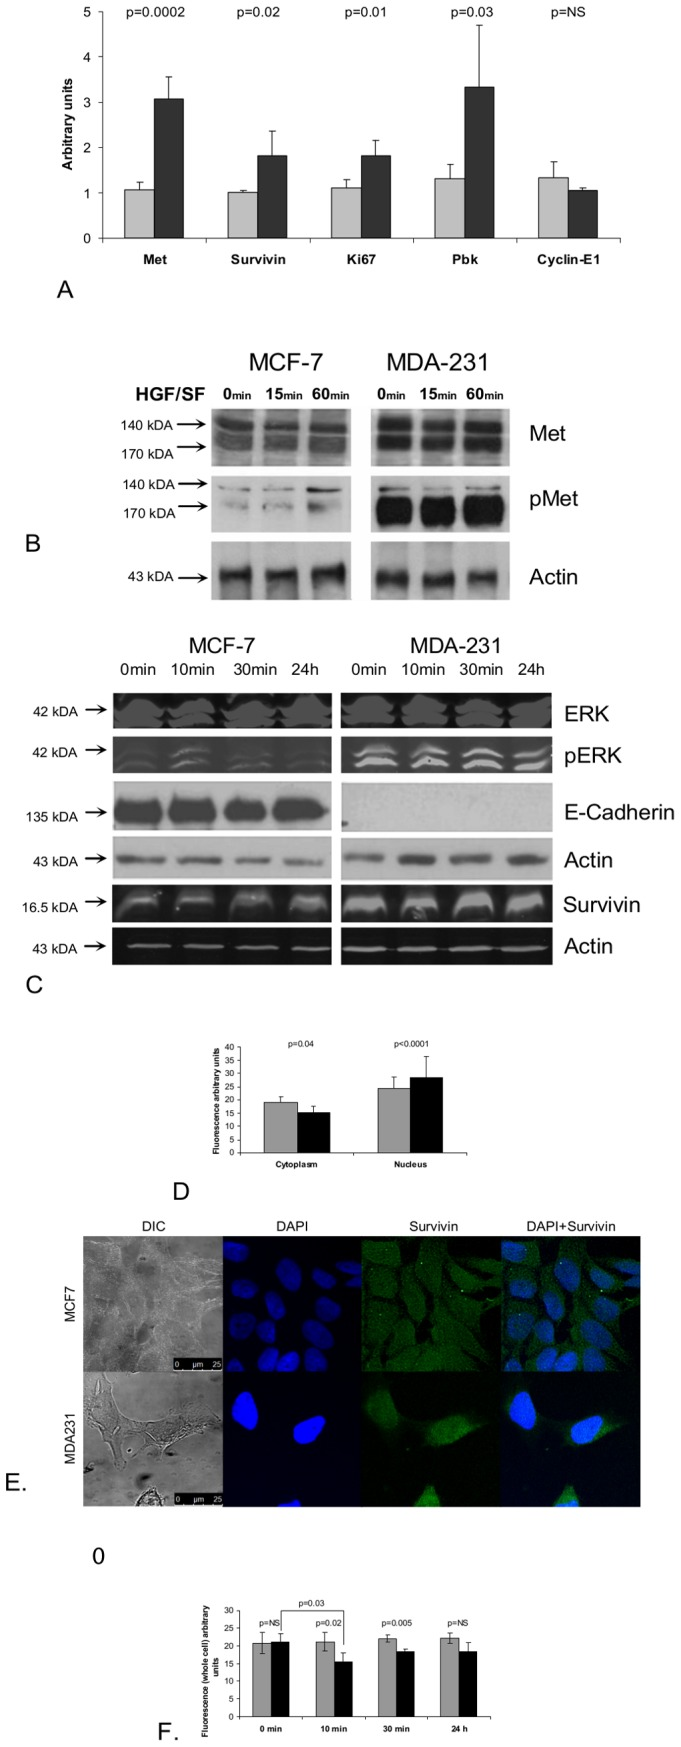 Molecular analysis of Met kinetic signature- mRNA and protein levels of selected genes in high and low Met expressing cells. (A) Total cellular RNA, was isolated from low (MCF7) and high Met (MDA231) cell cultures and mRNA expression of Met, Survivin, Pbk, Cyclin E1 and Ki67 was evaluated by quantitative real time PCR and compared mRNA levels of the housekeeping GAPDH gene. The primers used for the quantification of gene expression are listed in Table S2 . A gray box denotes MCF7 cell line samples and a black box denotes MDA231 cell line samples (B) Samples from low (MCF7) and high Met (MDA231) cells were subjected to western blot (WB) analysis, before and 15 min and 60 min after treatment with HGF/SF, using antibodies against Met and activated Met (p-Met) and (C) antibodies against ERK K-23, p-ERK E-4, E-Cadherin, Survivin and Actin C4. (D, E) Subcellular localization of survivin in fluorescence (IF) analysis of Low (MCF7) and high Met (MDA231) cells after treatment with HGF/SF at 0 min, 10 min, 30 min and 24 h. The cells were Immunostained using anti-Survivin antibody. Immunofluorescence was examined using a <t>510</t> Meta <t>Zeiss</t> confocal laser scanning microscope (CLSM). Survivin quantification was performed on at least five confocal images per slide. Cell outline was defined based on Nomarski images; nuclei were defined based on the DAPI staining. Average pixel intensity was calculated separately for the nucleus and cytoplasm areas. (F) IF analysis of temporal kinetics of Survivin protein expression following treatment with HGF/SF .